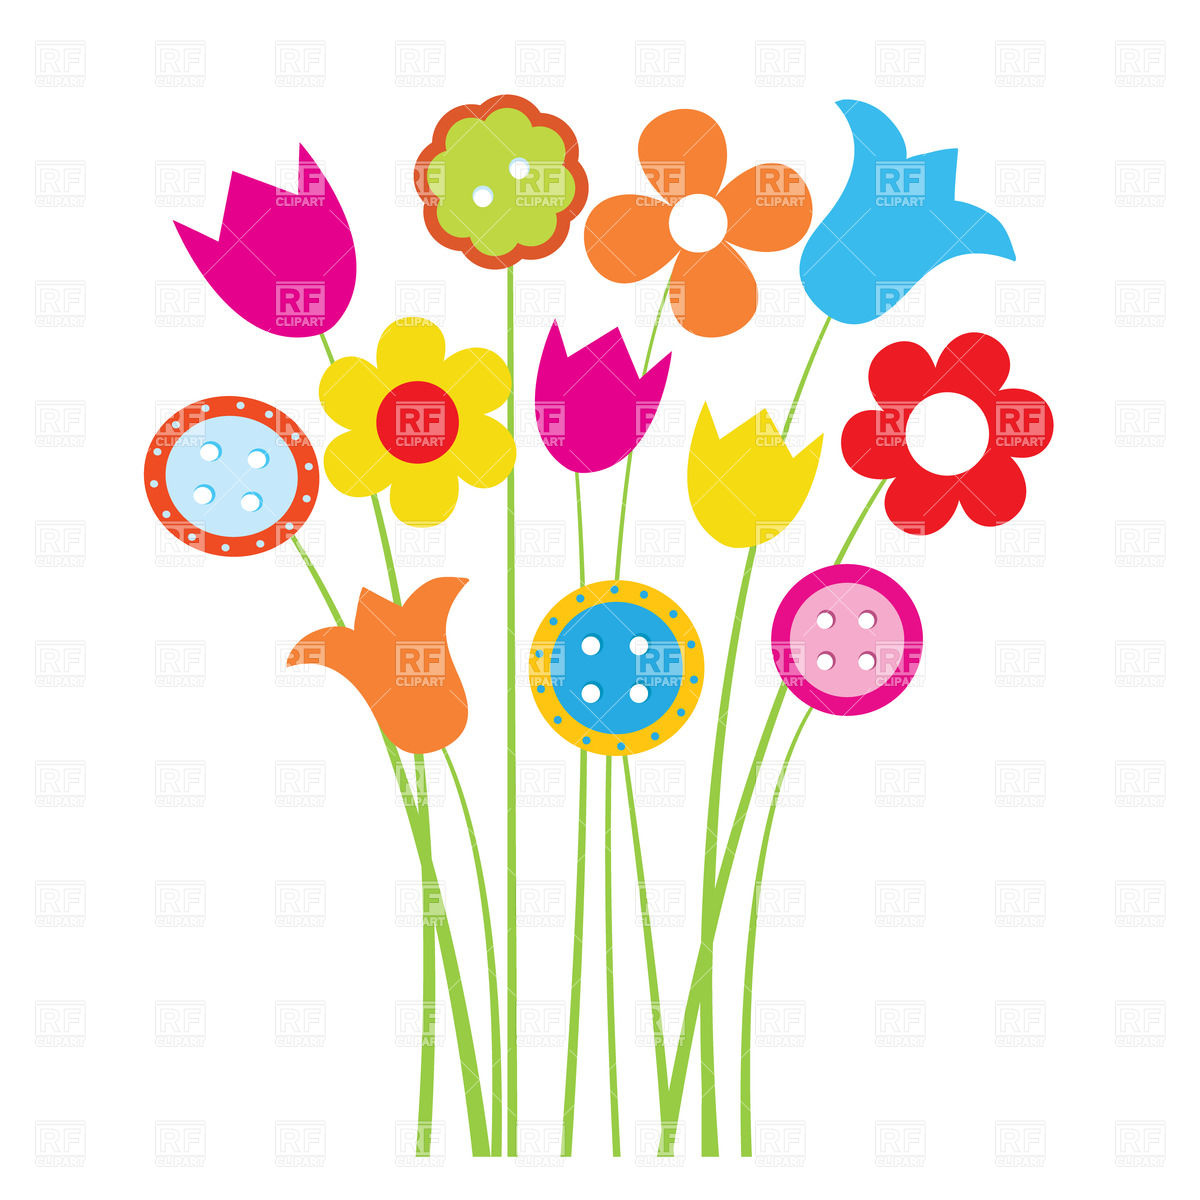 Colorful Cartoon Flowers 24175 Download Royalty Free Vector Clipart